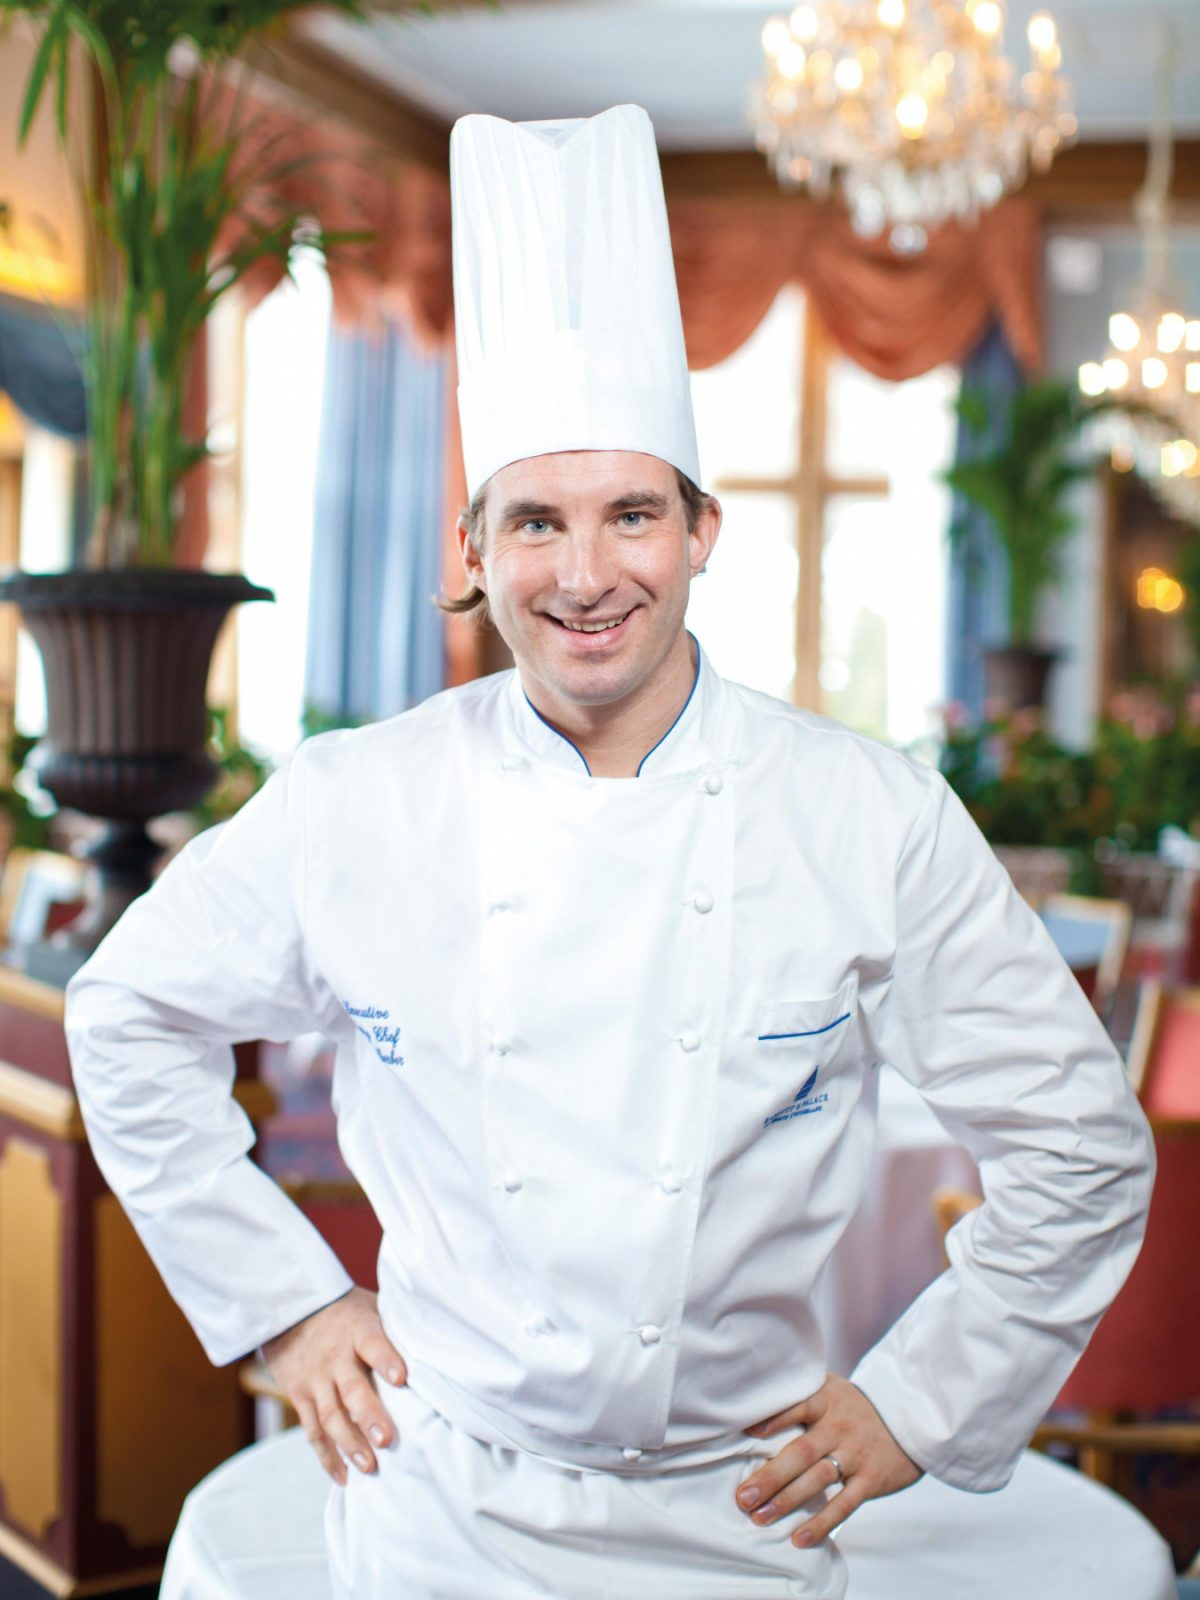 Stefan Gerber Executive Pastry Chef at Badrutt's Palace Hotel in St. Moritz